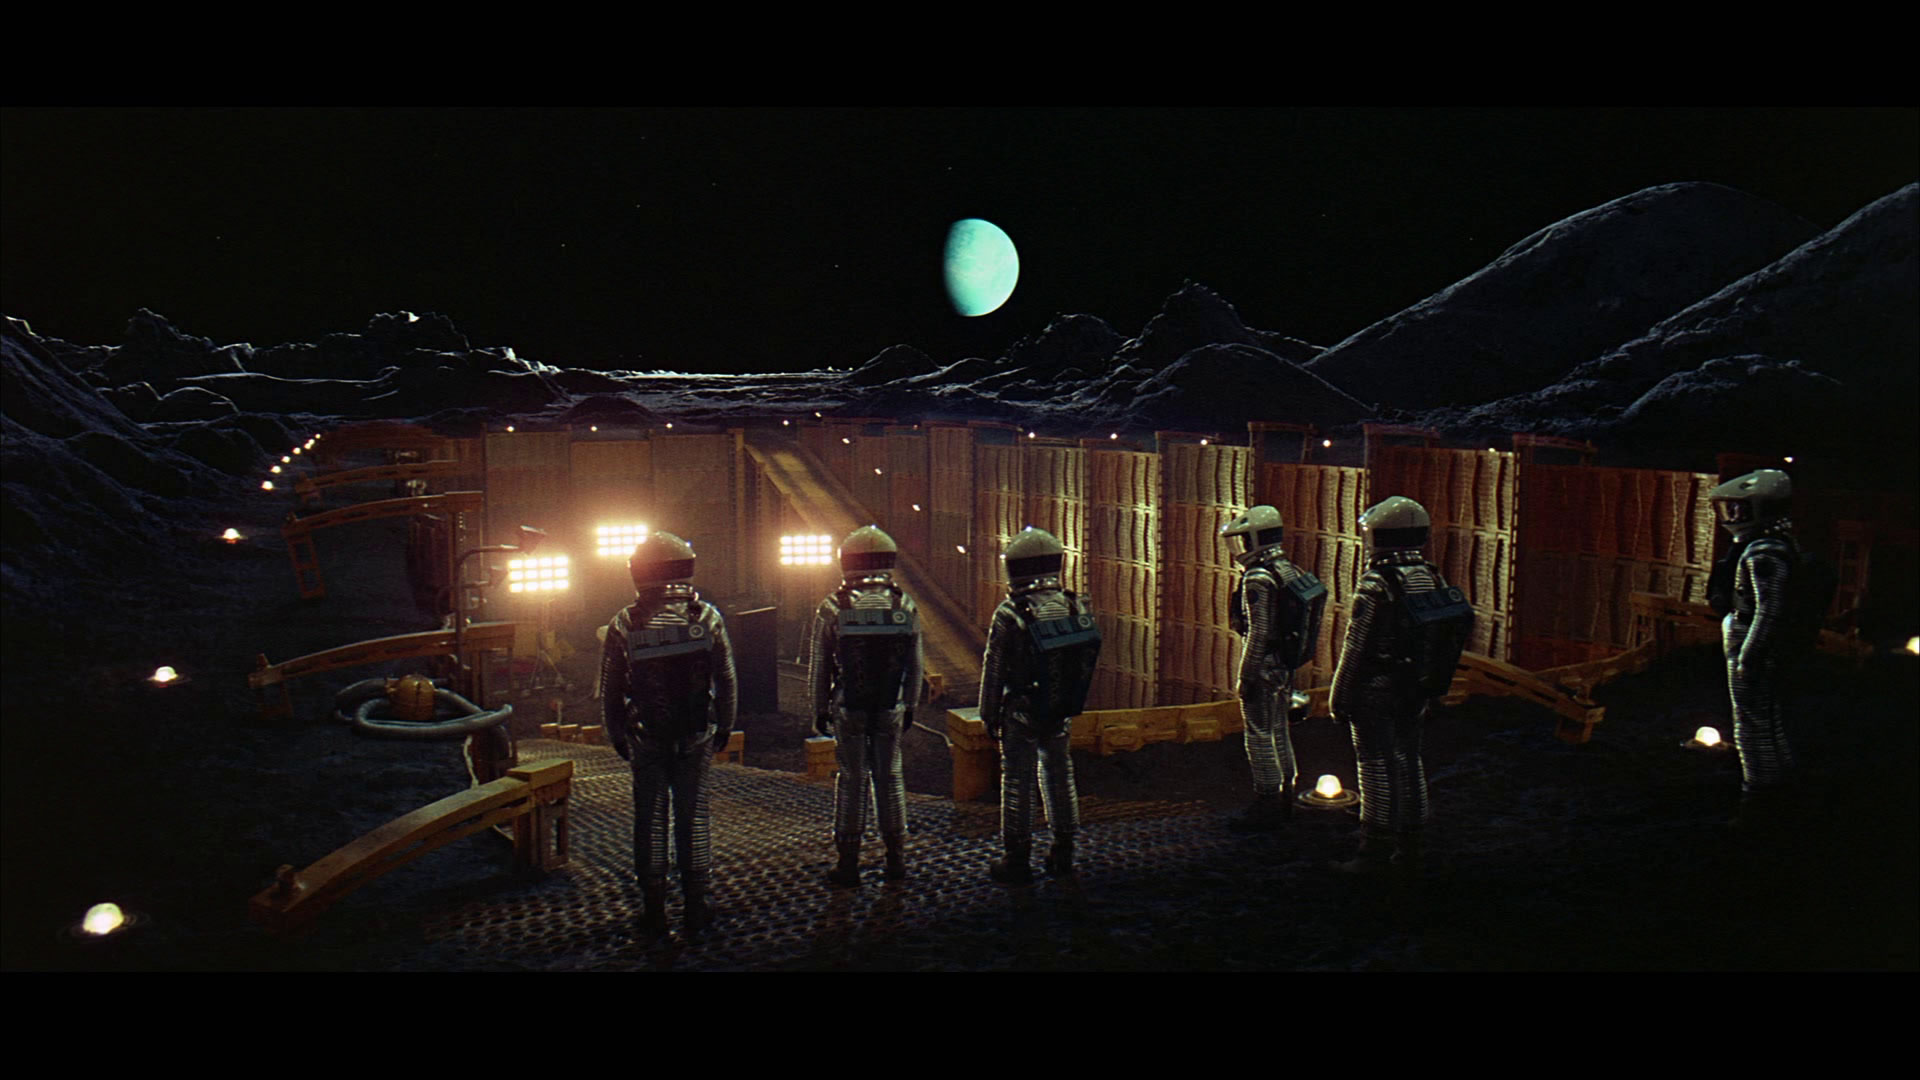 2001: A Space Odyssey Backgrounds on Wallpapers Vista